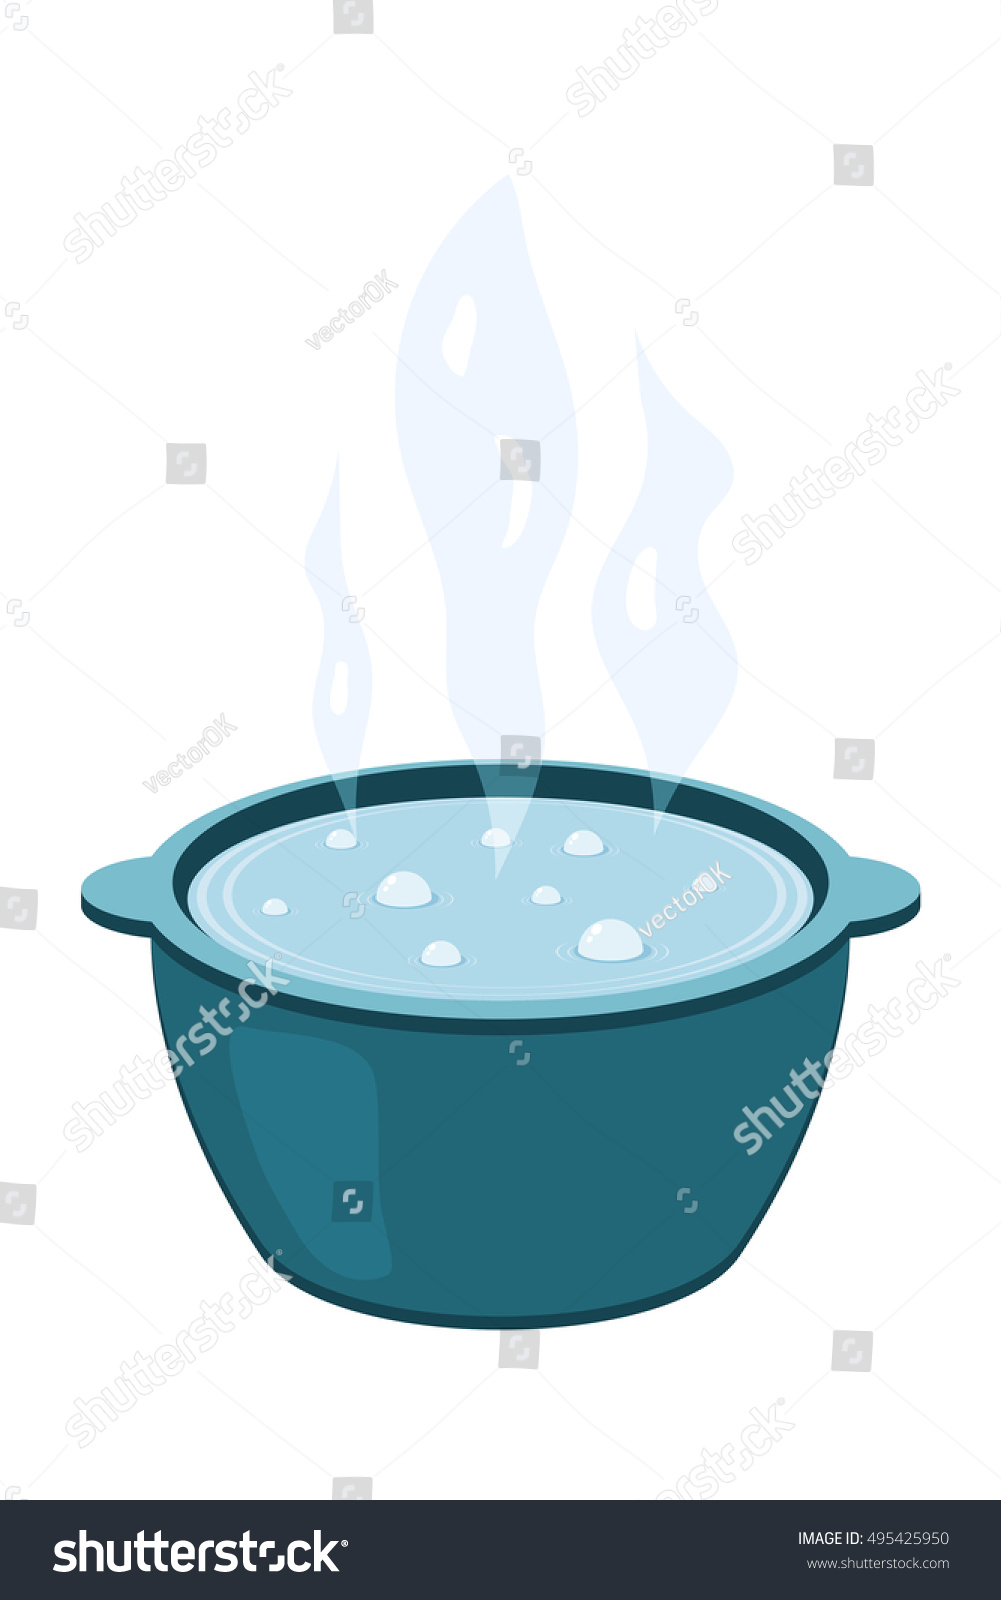 Vector Illustration Metal Pot Boiling Water Stock Vector ...